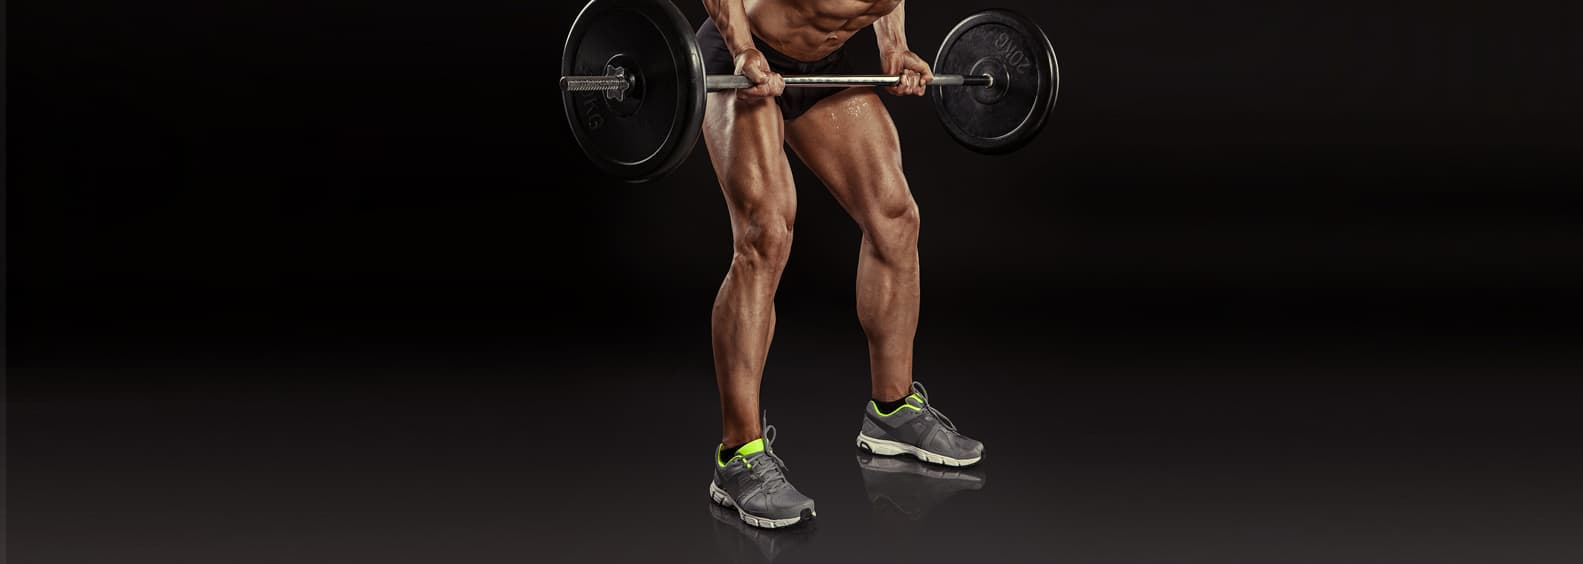 Leg Workouts to Pump Up Legs Day